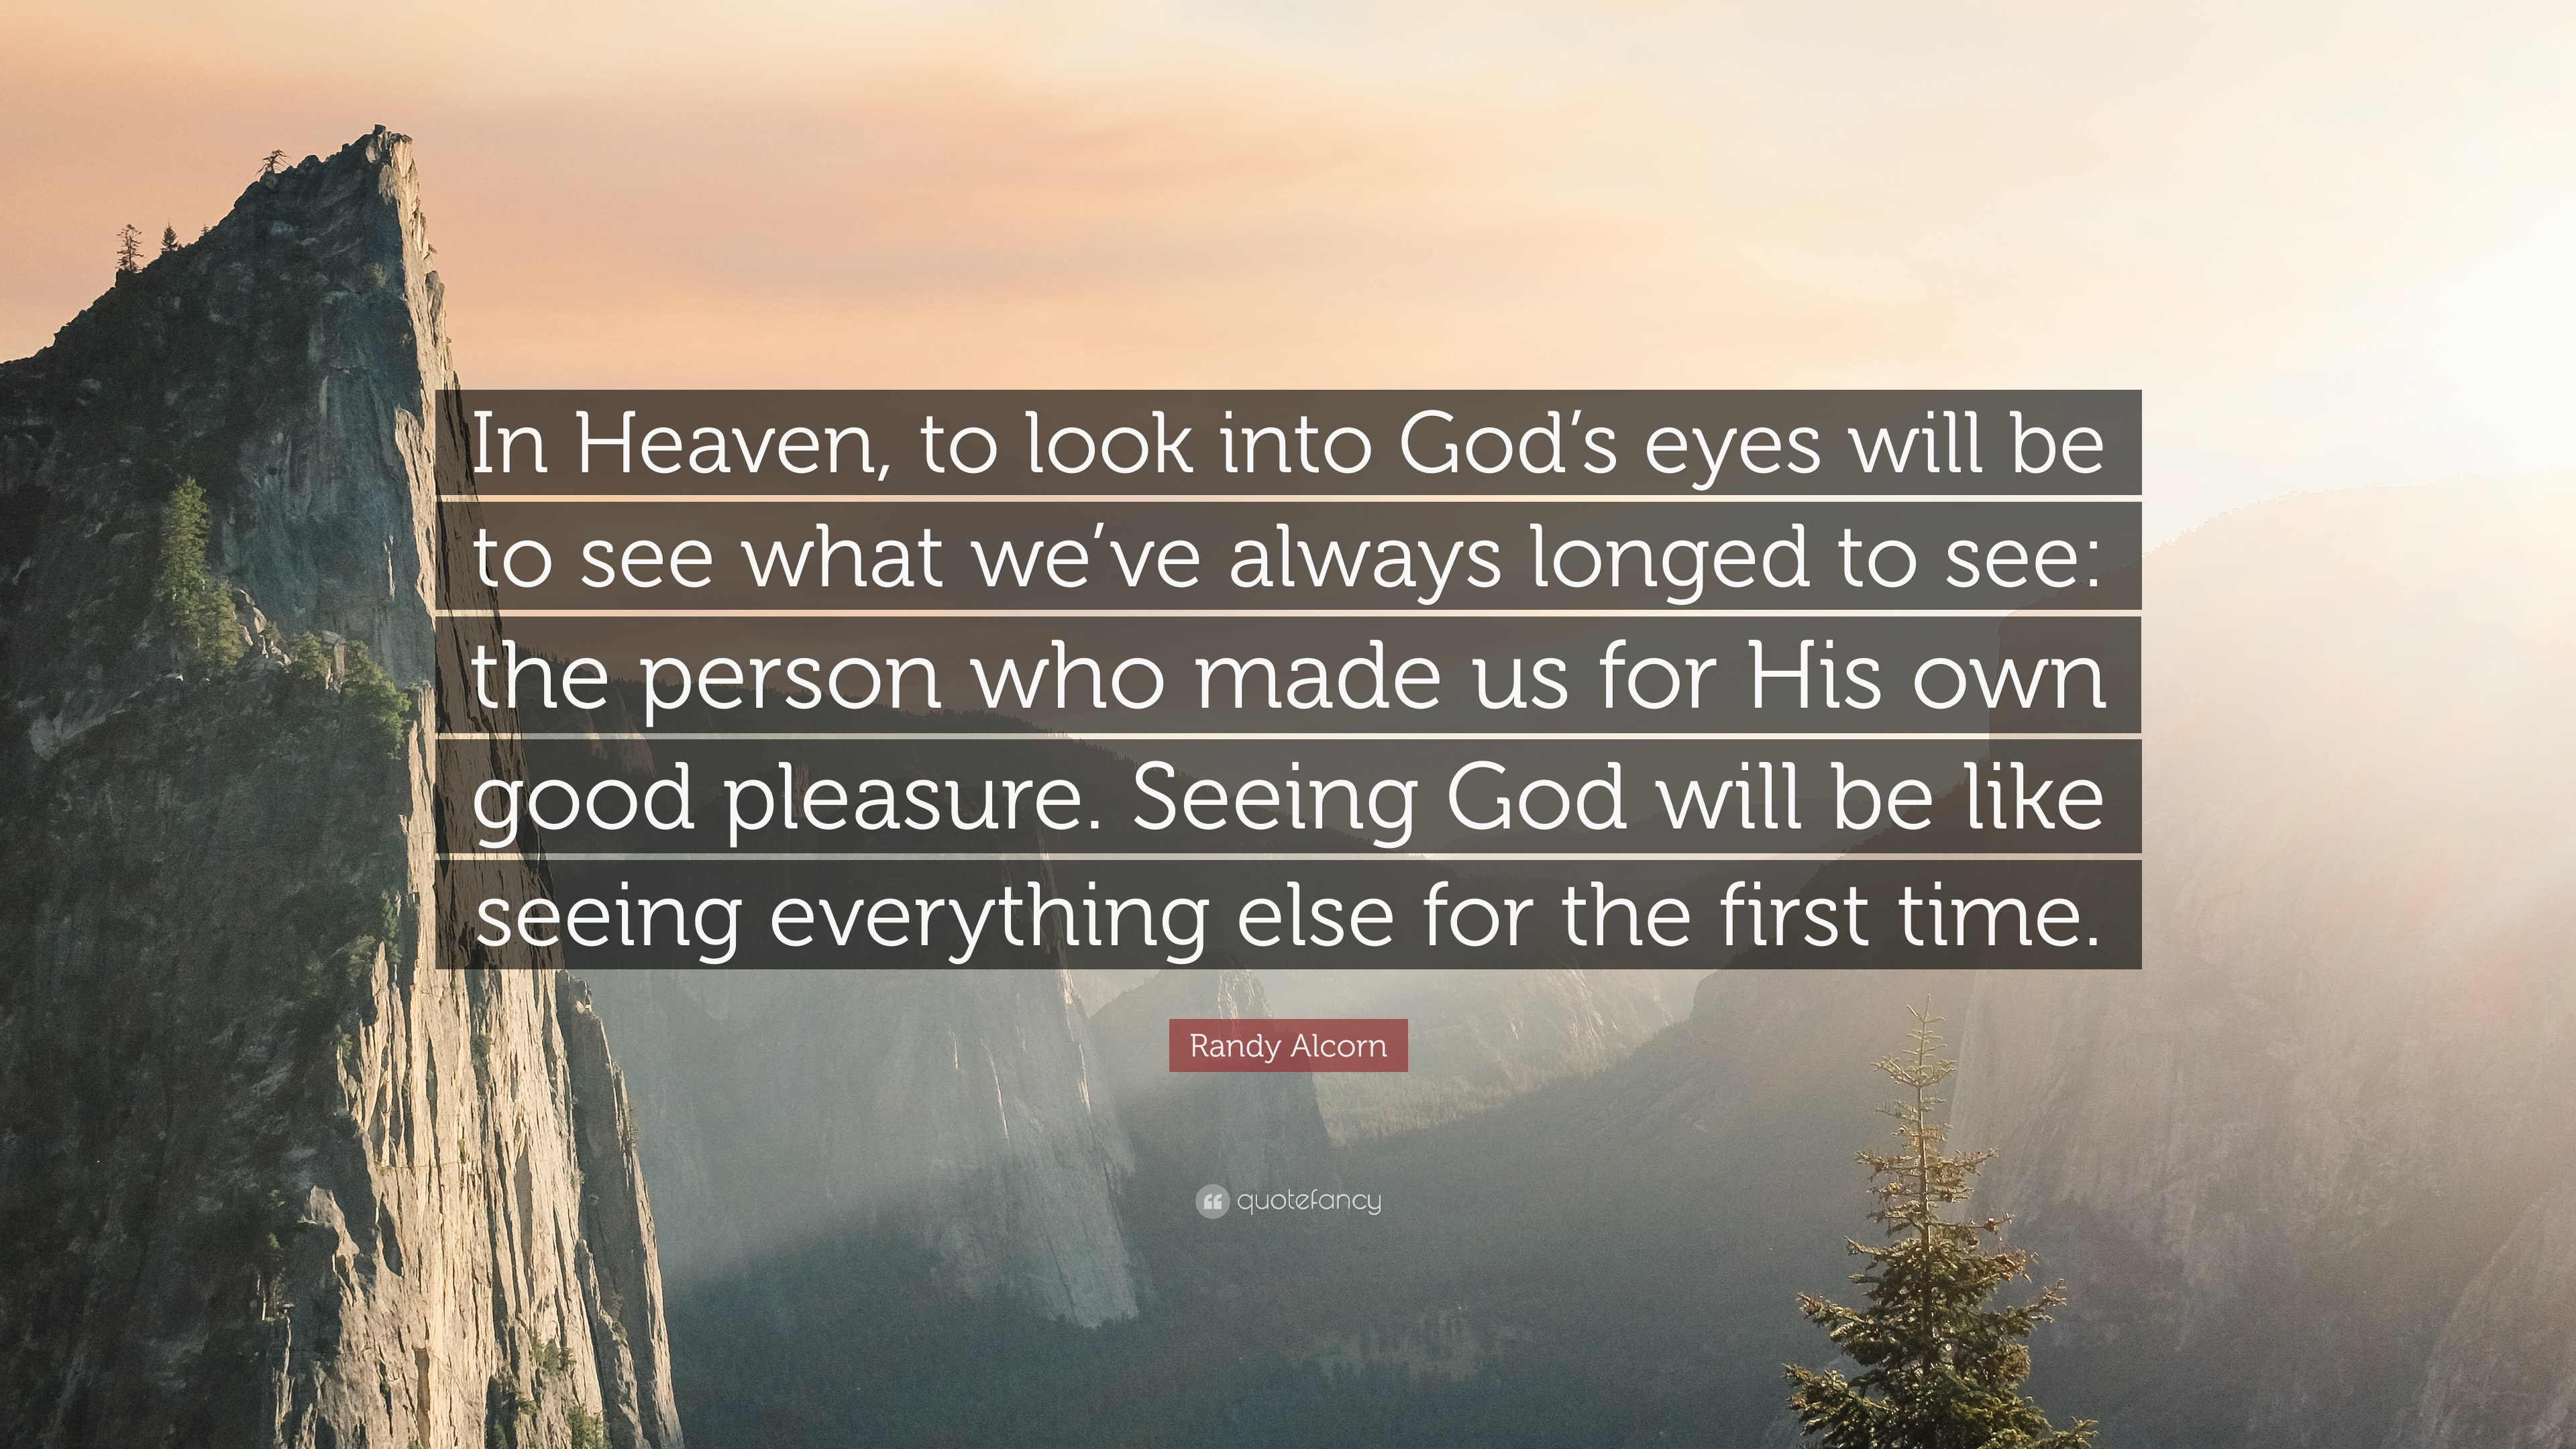 How does God look and see who it is